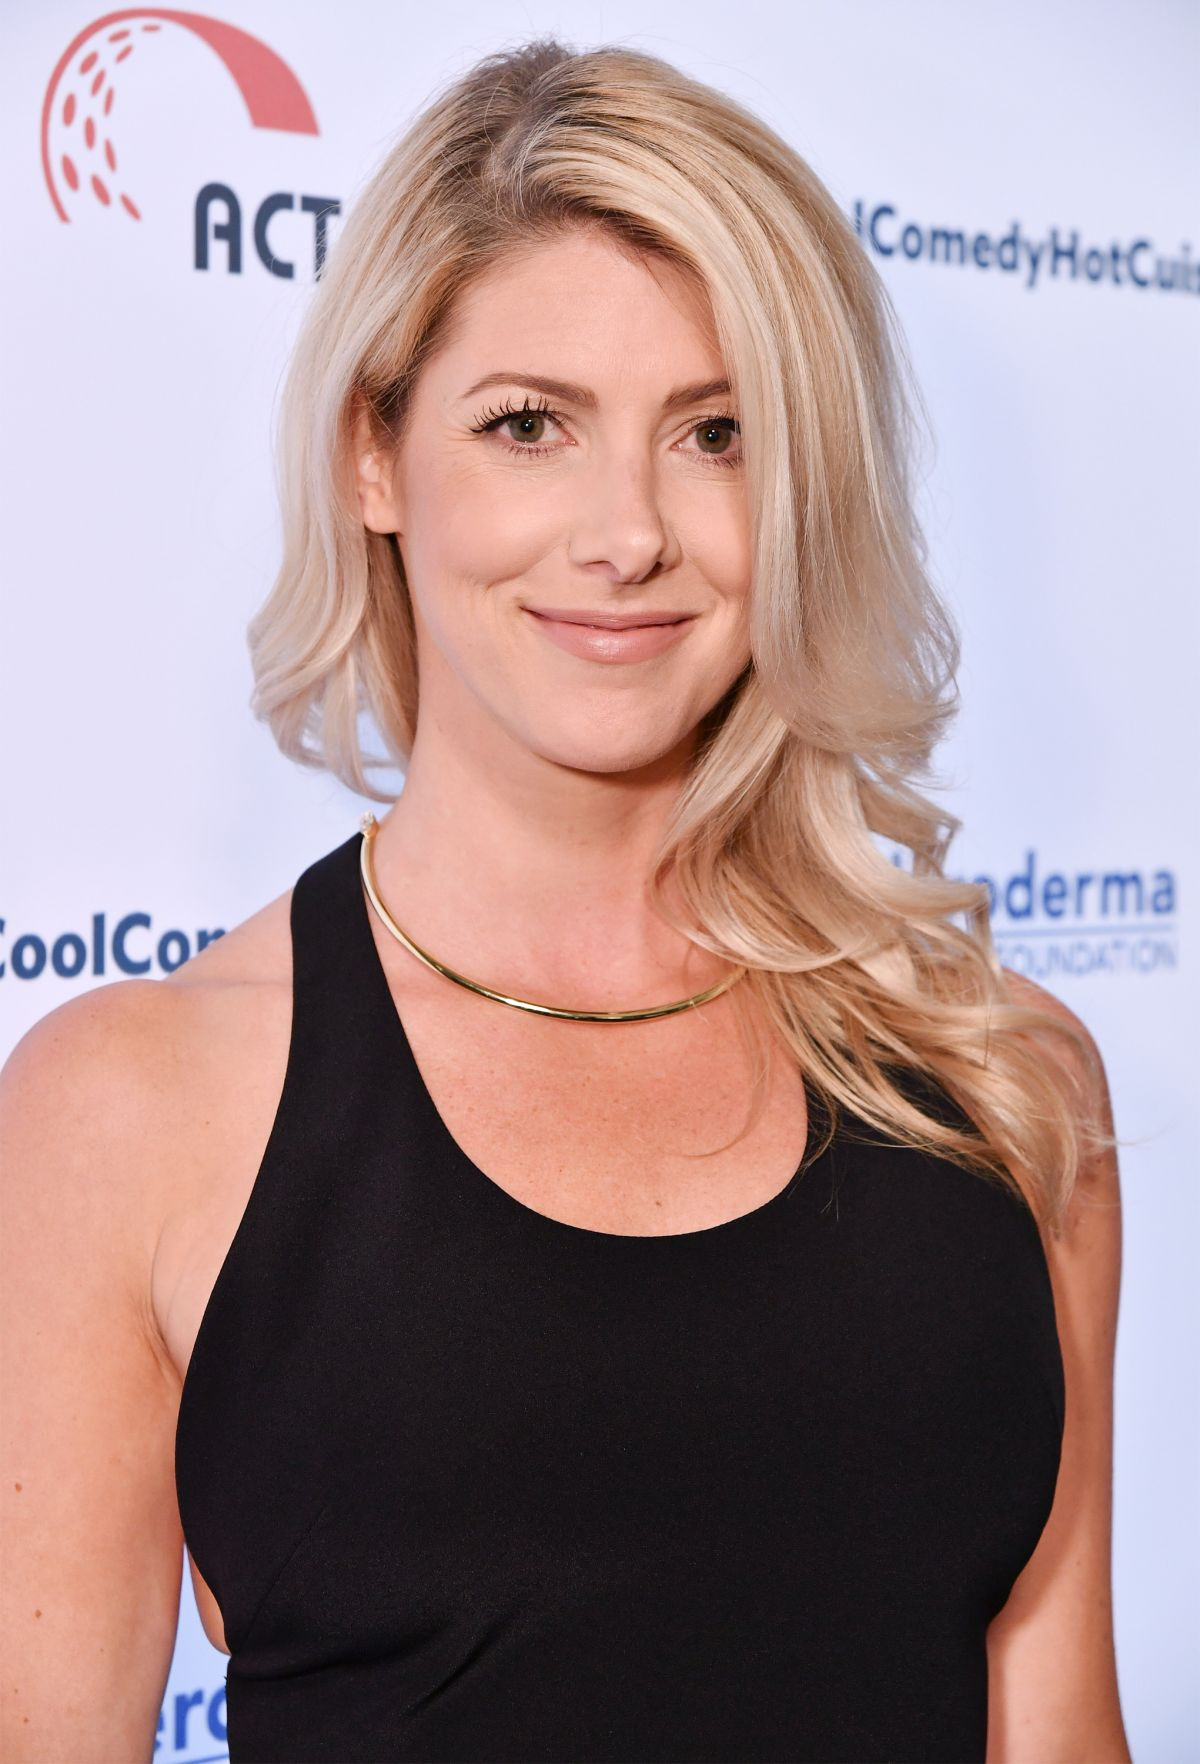 KELLY RIZZO at Cool Comedy, Hot Cuisine Fundraiser in Beverly Hills 06/16/2017